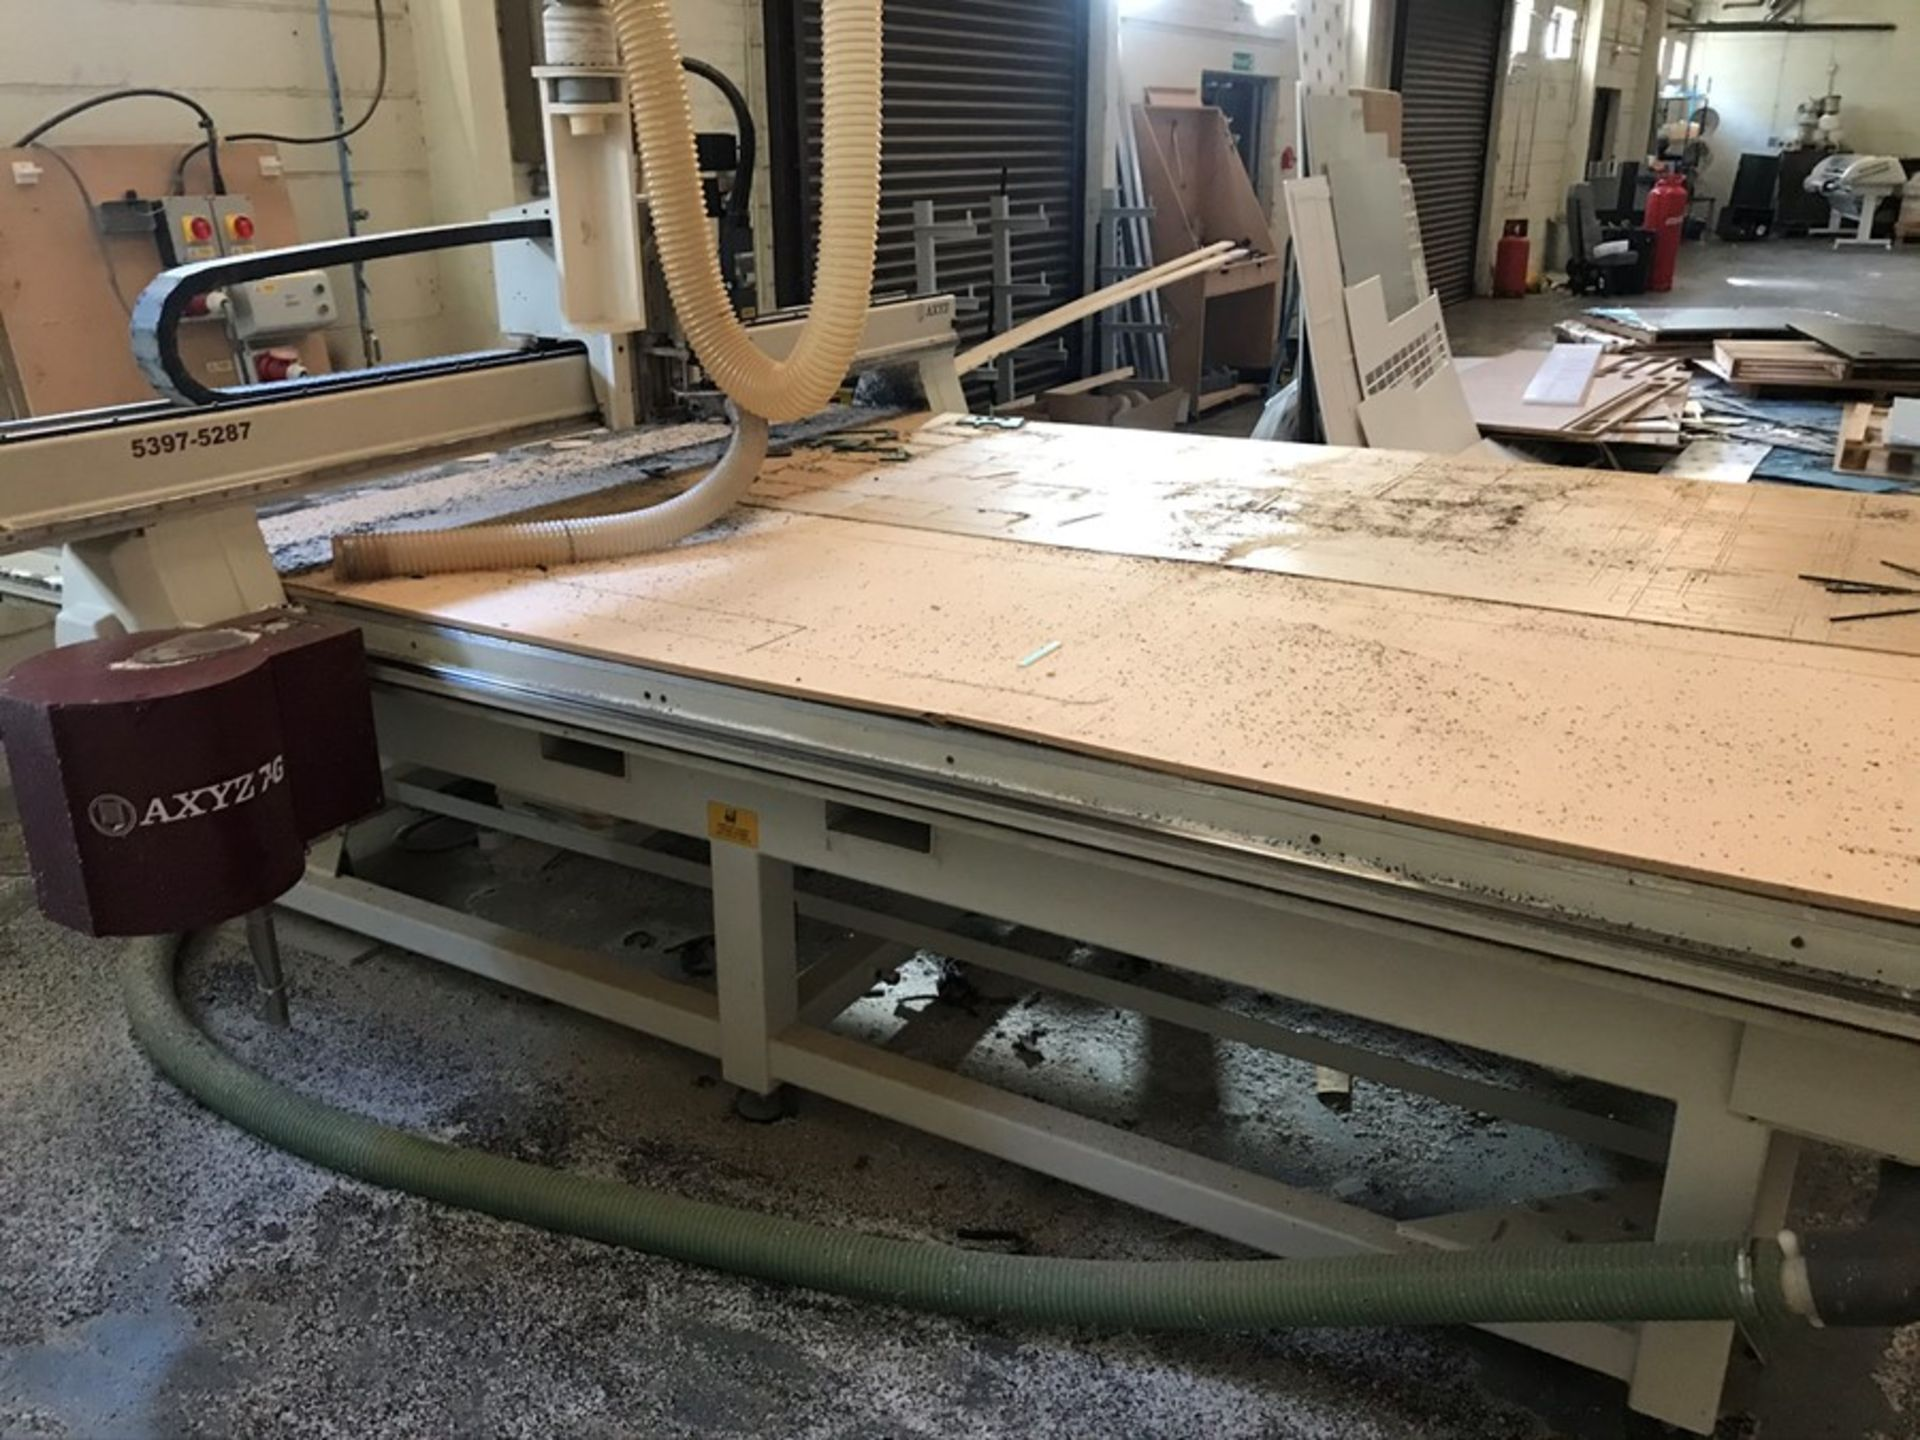 AXYZ 6010 ATC 7G CNC router (2015) - Image 6 of 20